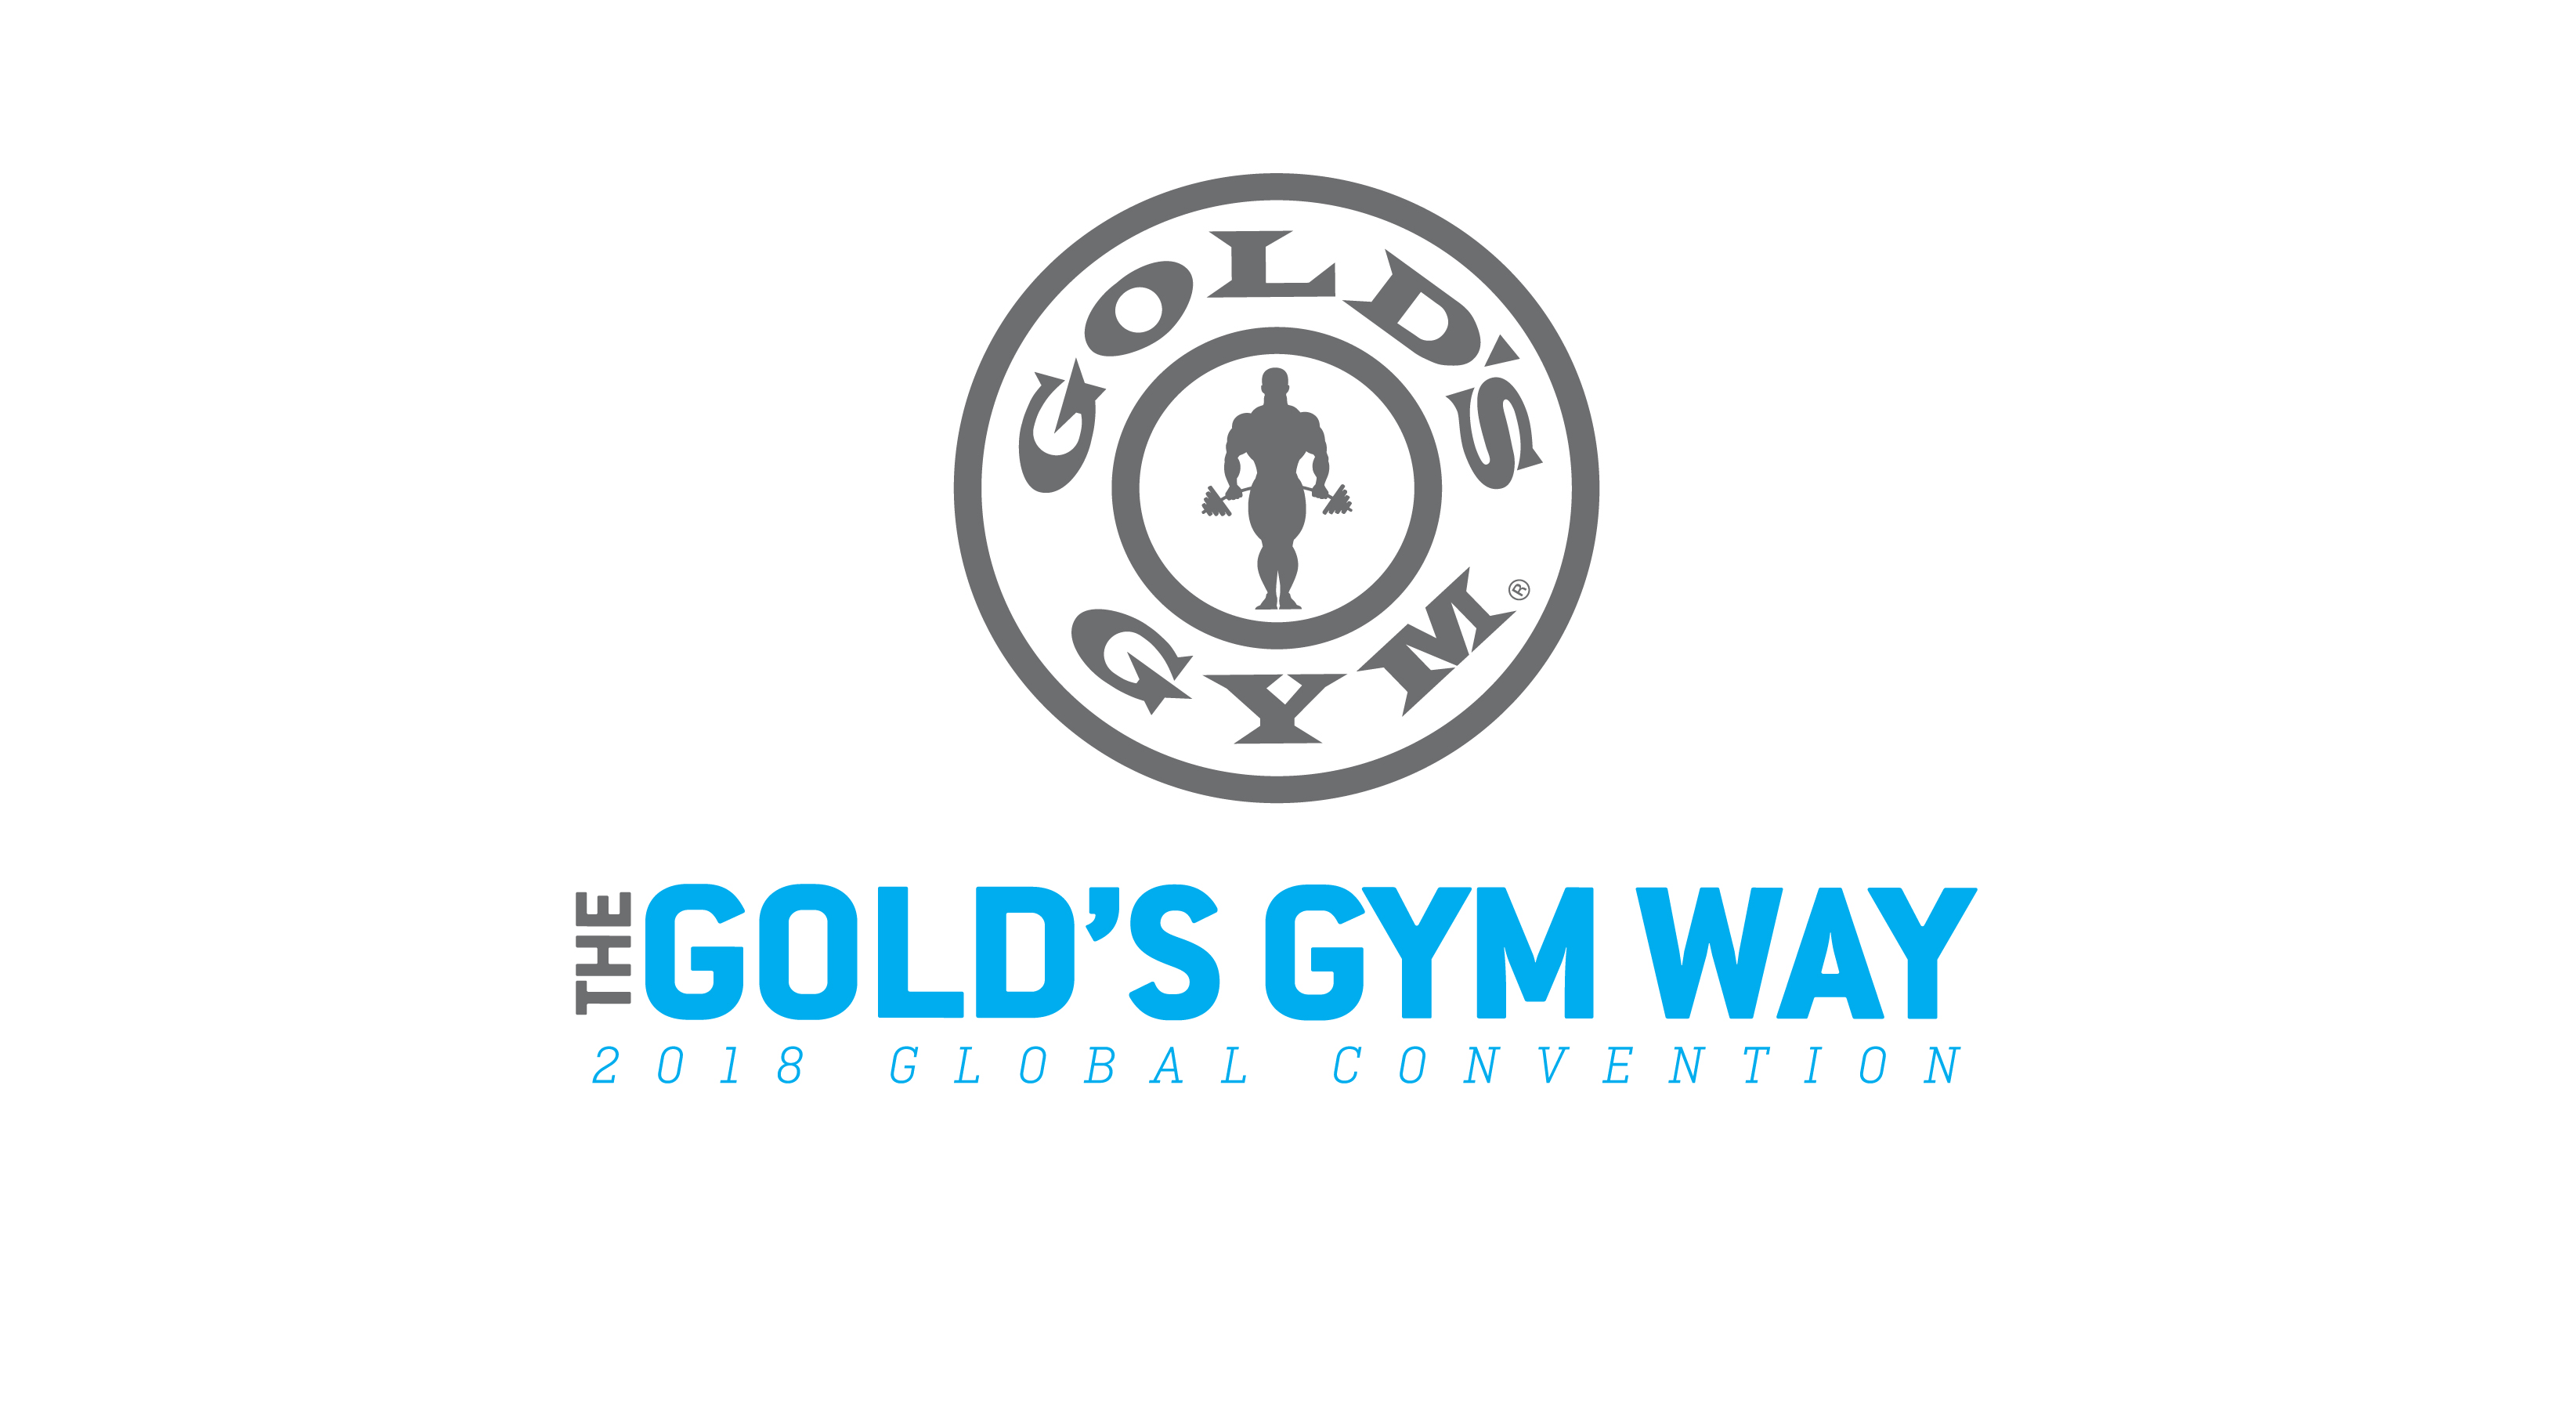 2018 Gold's Gym Franchise Convention